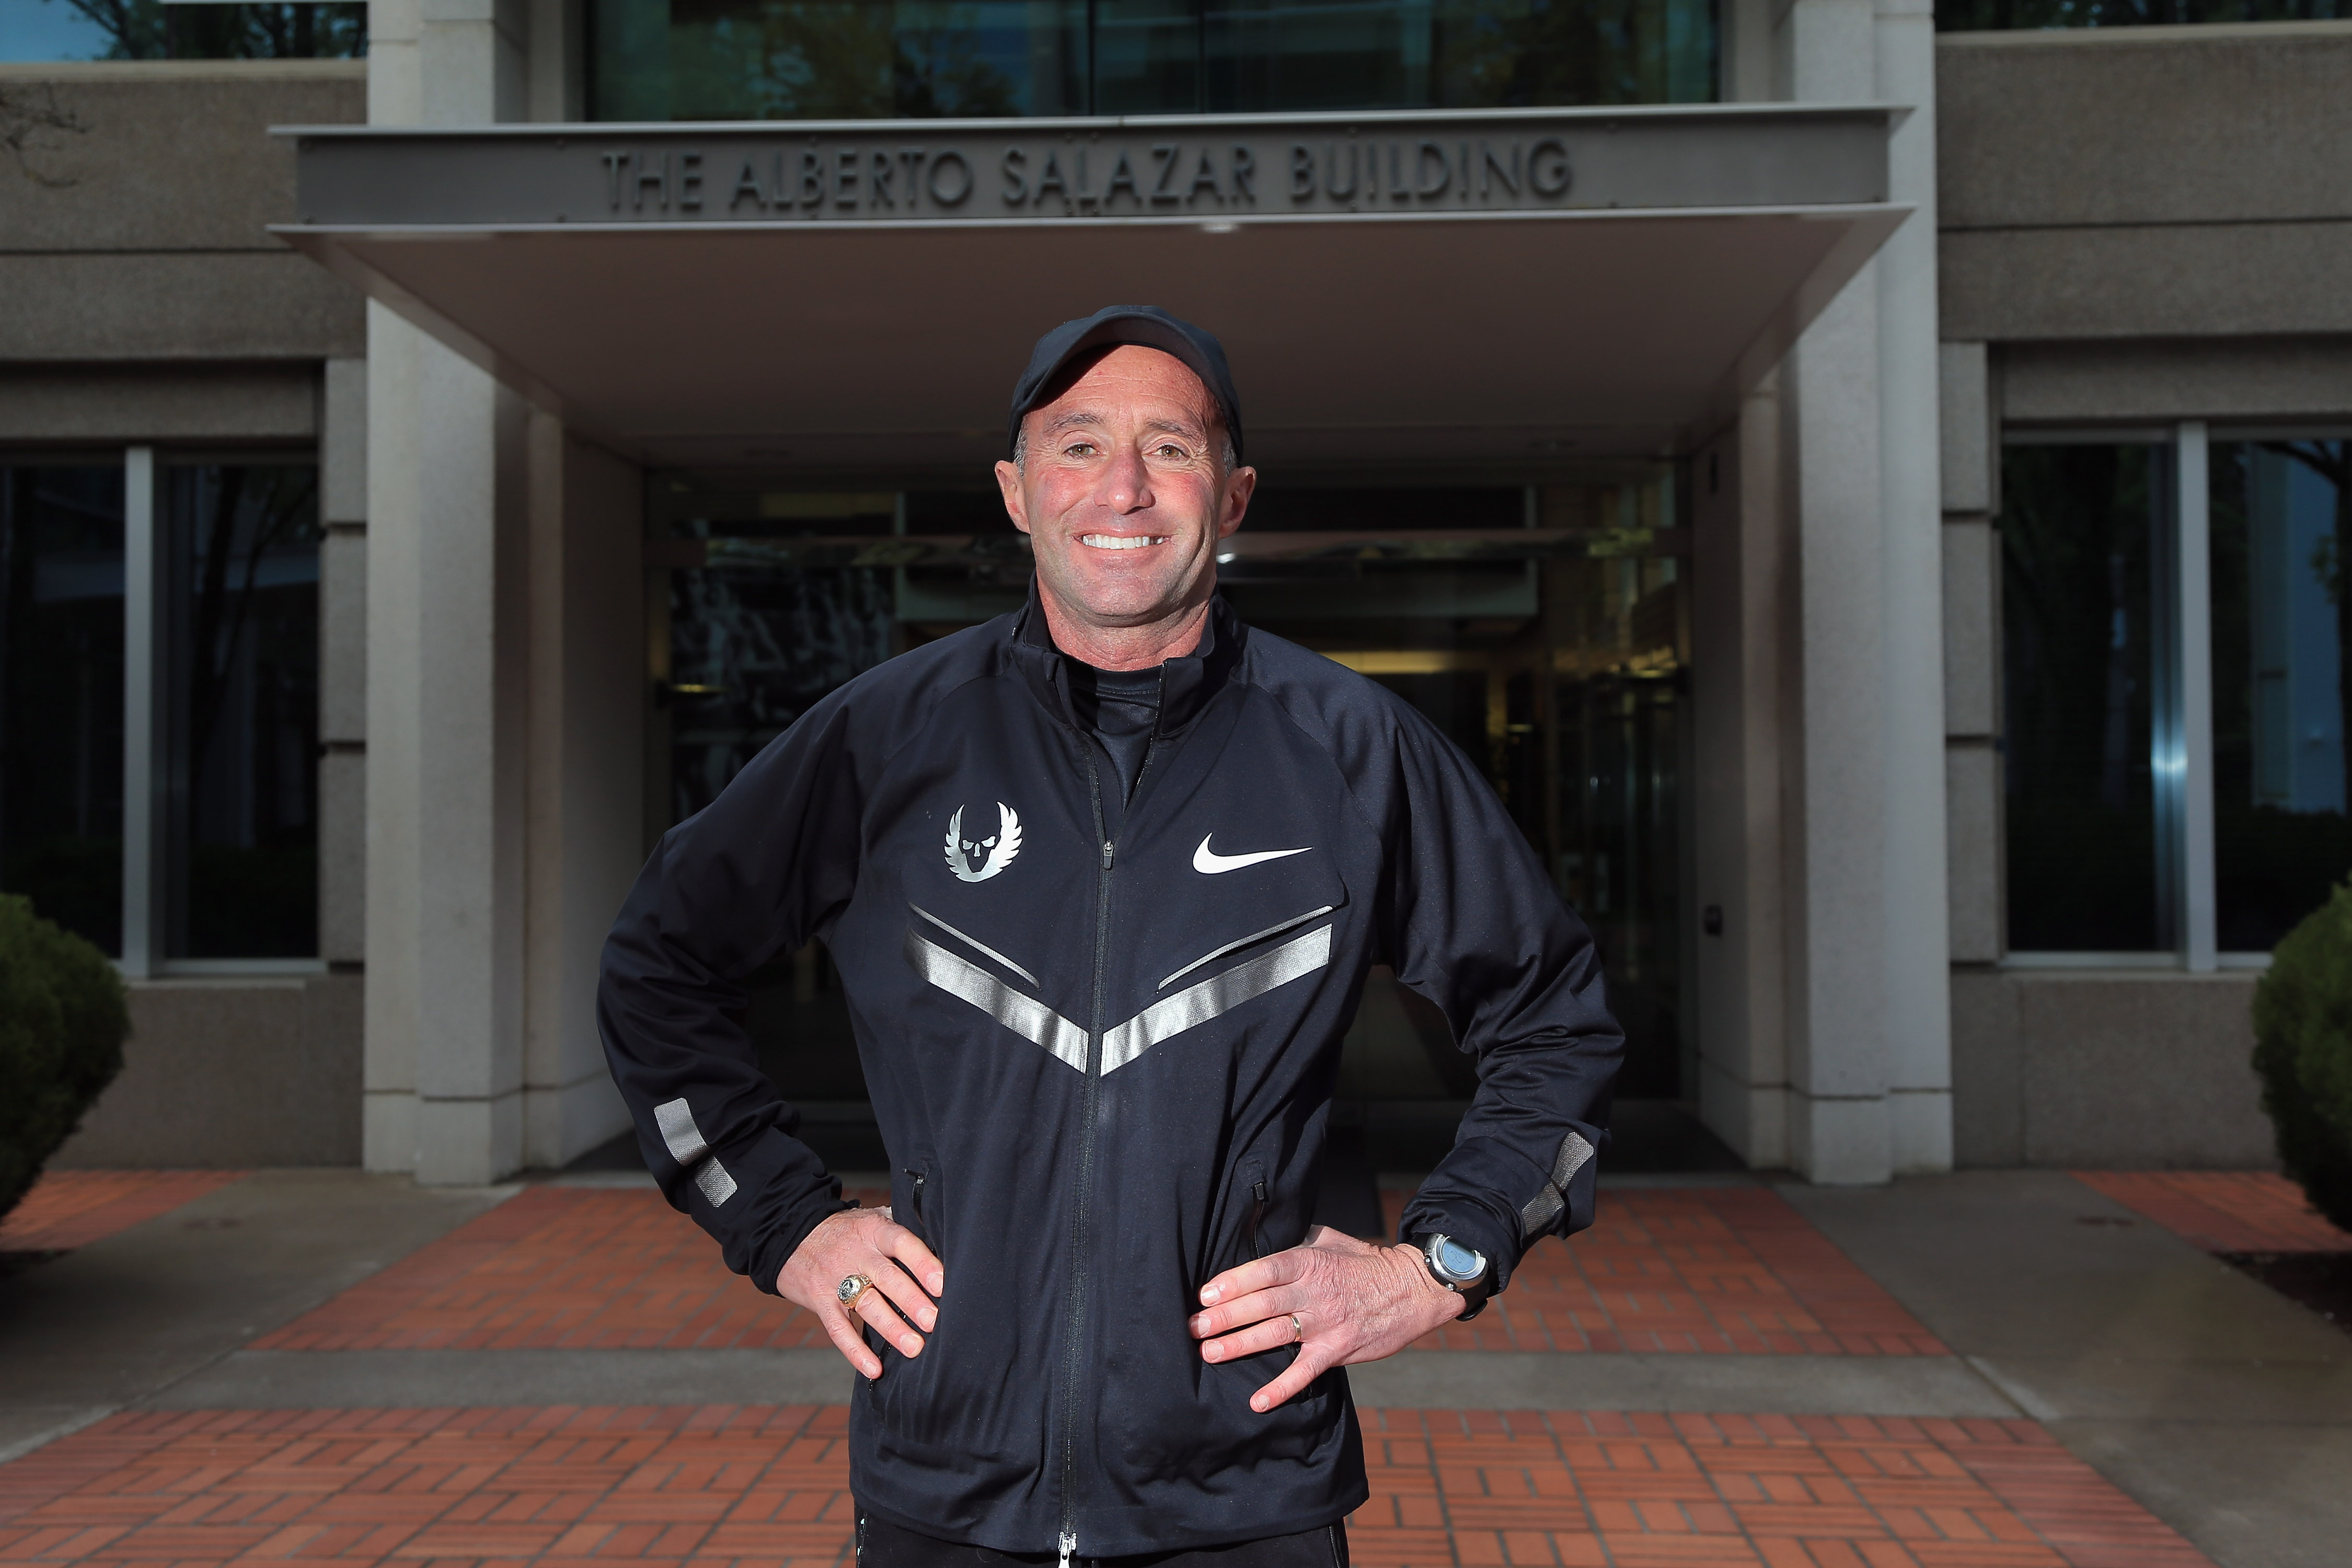 IAAF - Day in the Life - USA